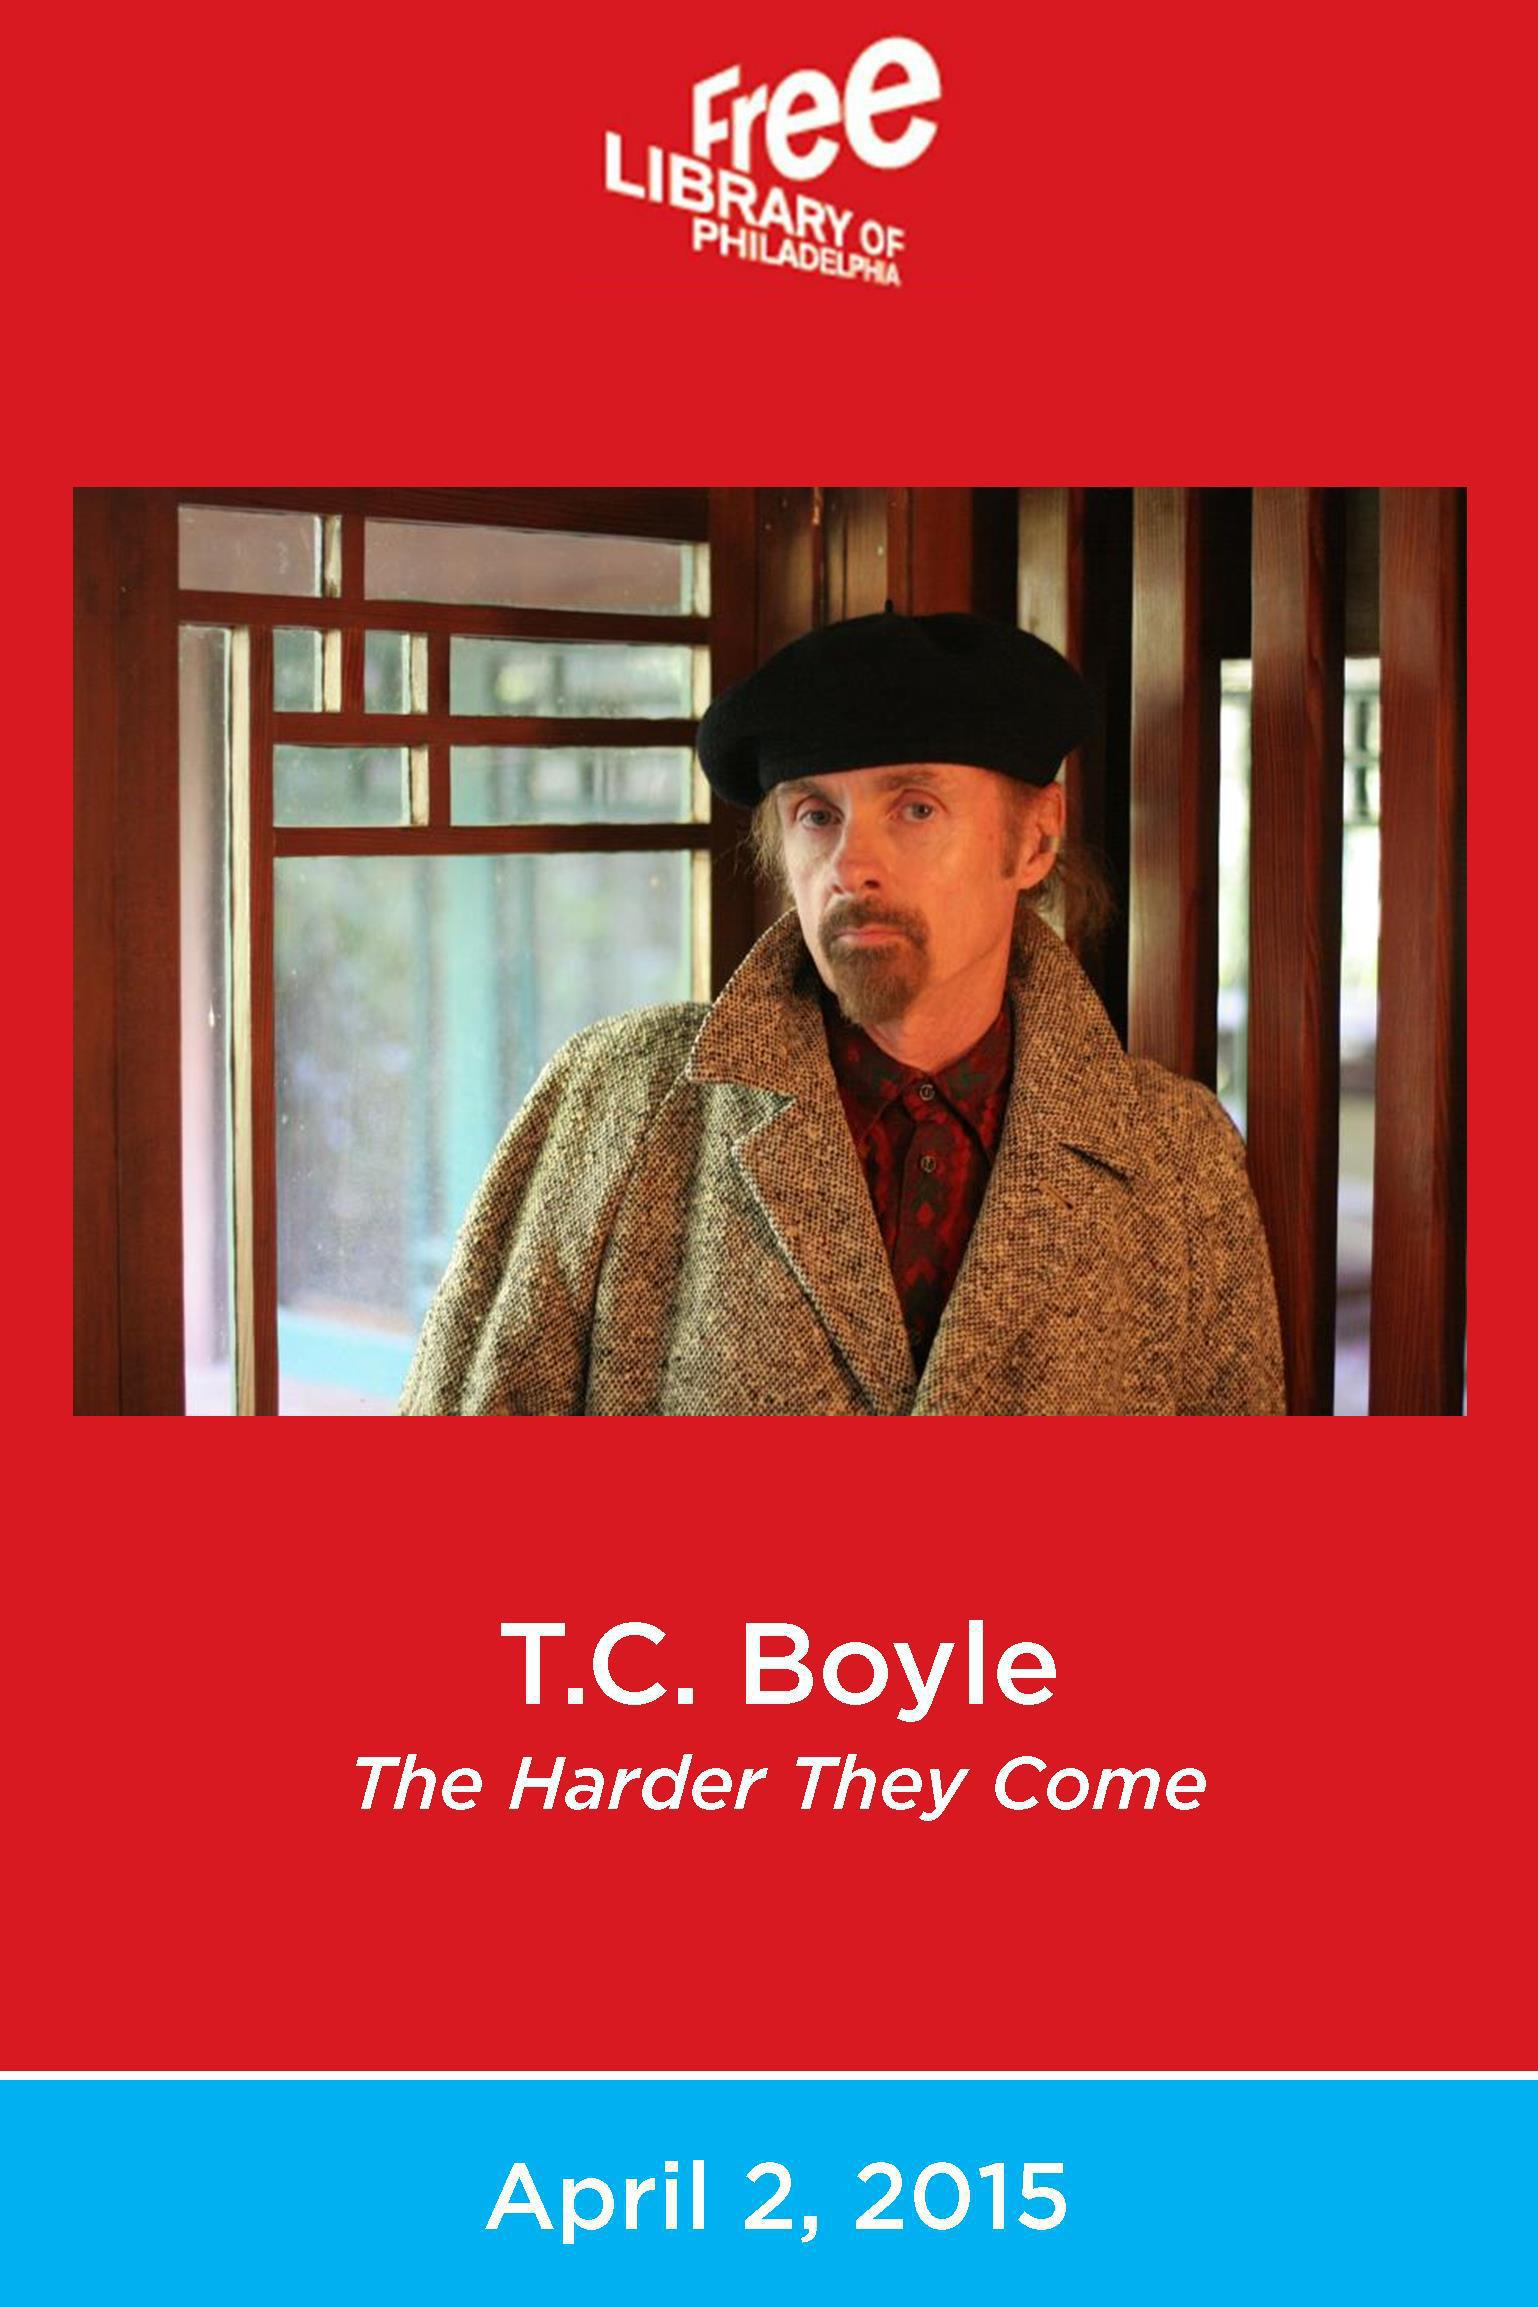 tc boyle modern love Tc boyle modern love donna slender prof jon frederick writing i april 2, 2013 greasy lake by tc boyle the short story greasy lake is written by t c boyle the son of irish immigrants boyle recalls growing up 'as a sort of pampered punk' we see this pampered punk attitude in the story's main characters.